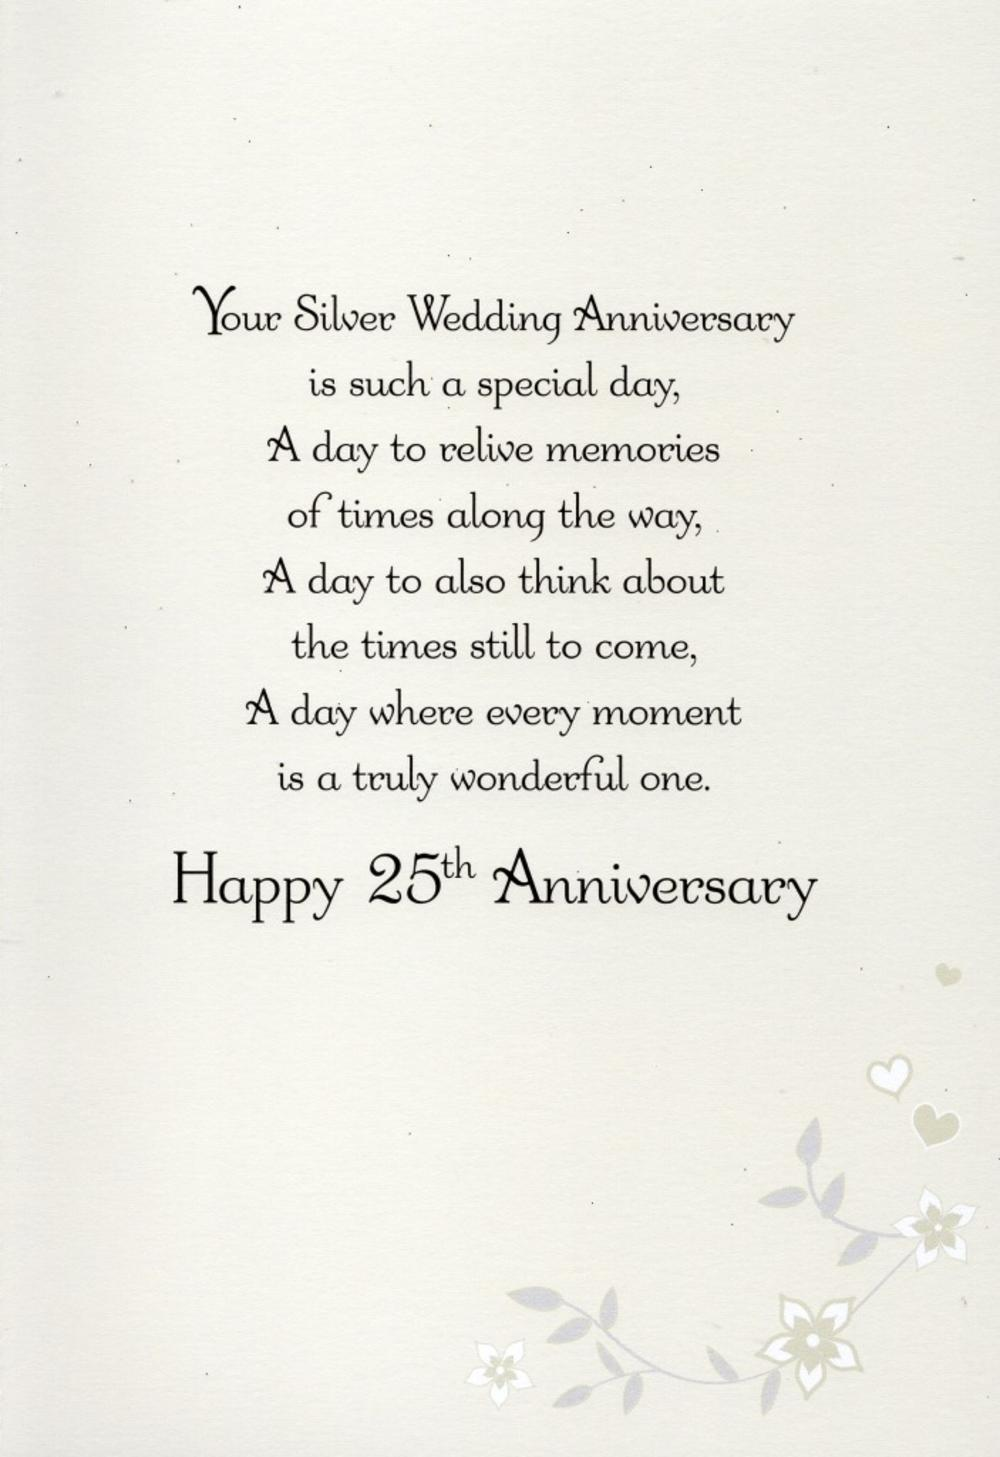 On your silver 25th anniversary greeting card cards love kates thumbnail 2 bookmarktalkfo Gallery